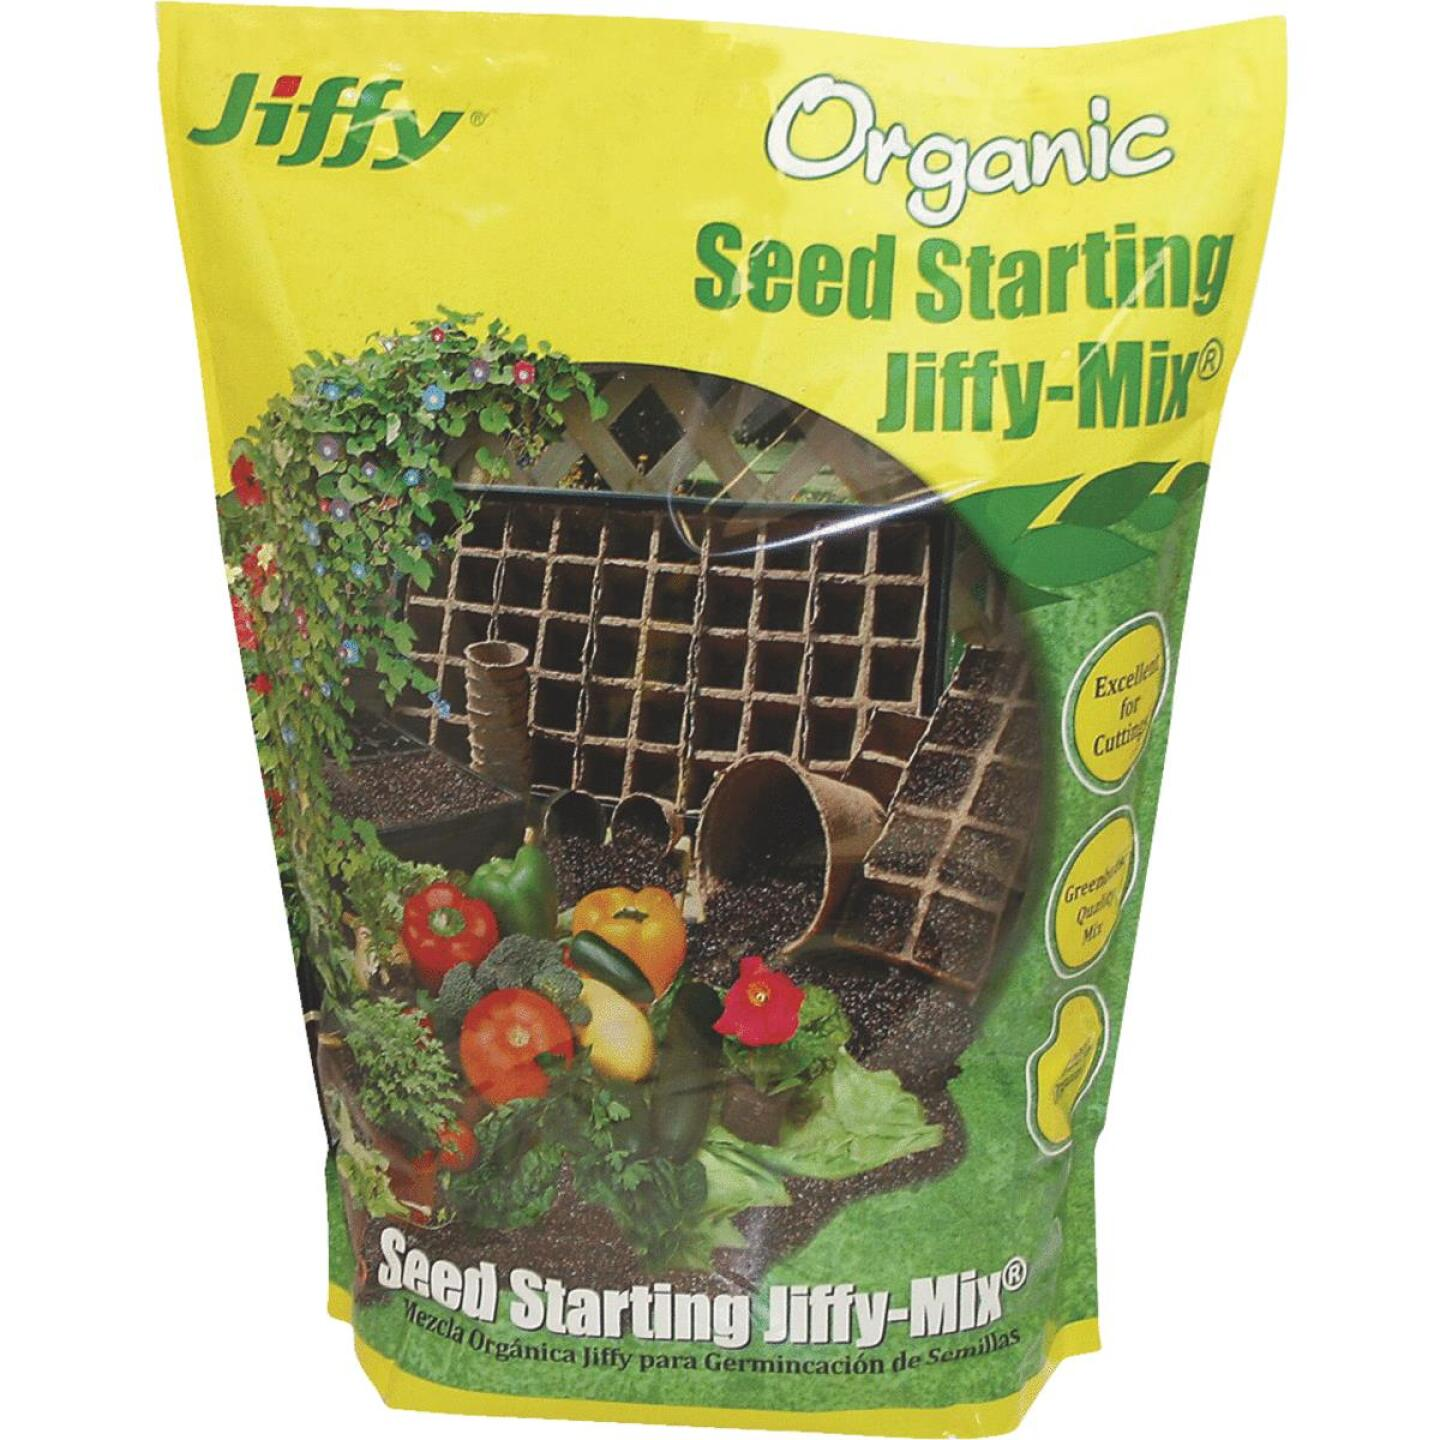 Jiffy 16 Qt. All Purpose Container Organic Seed Starting Mix Image 1